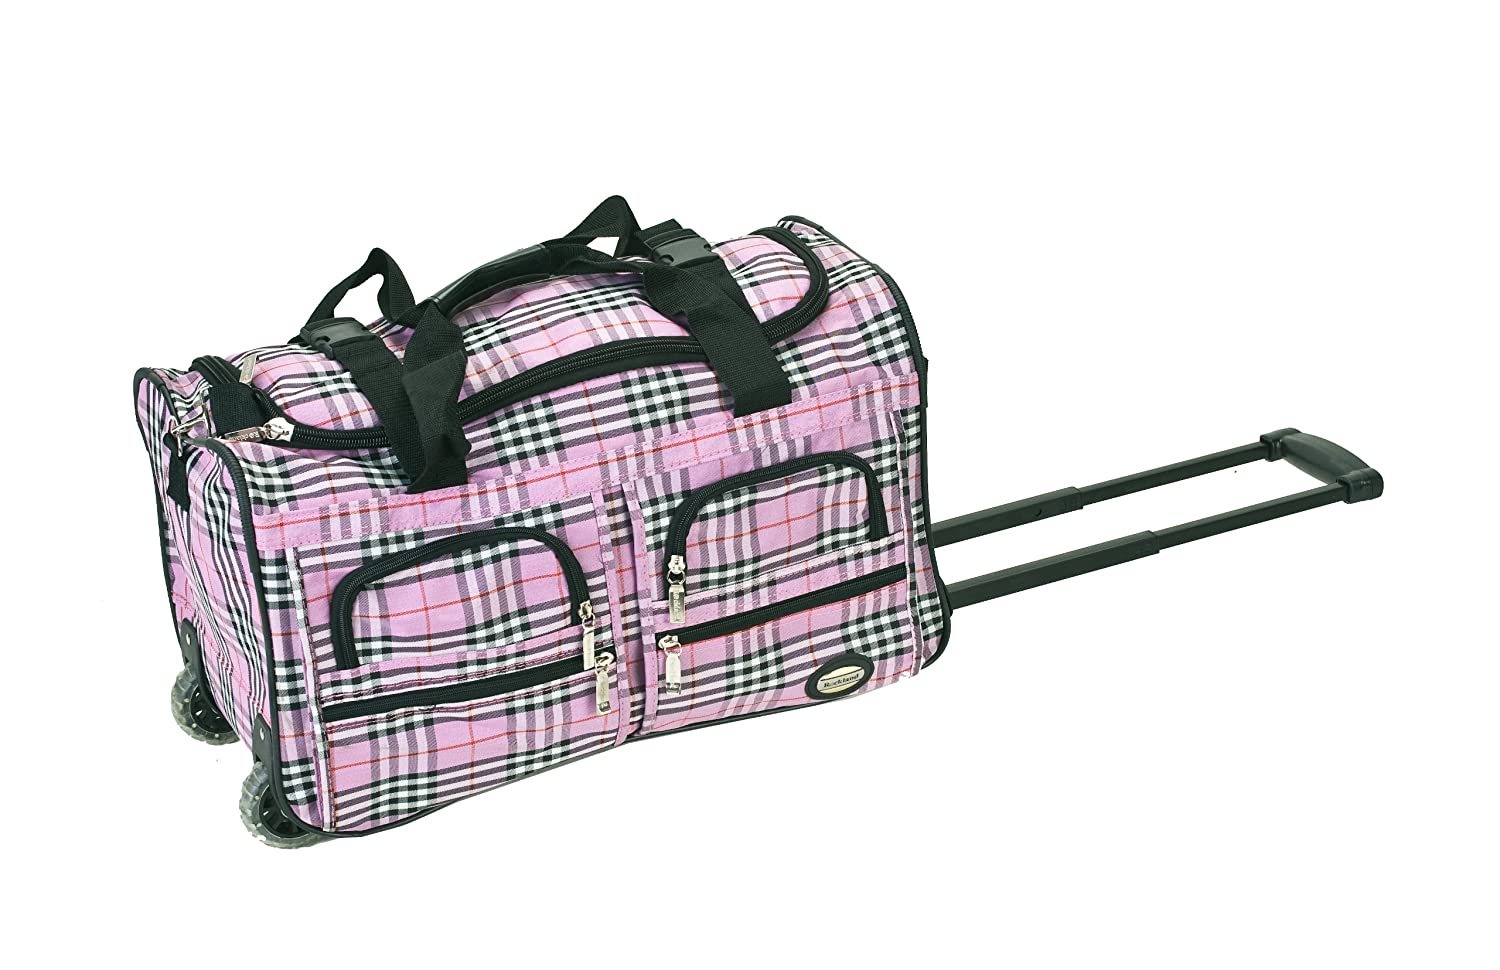 Amazon.com | Rockland Luggage 22 Inch Rolling Duffle Bag, Black ...